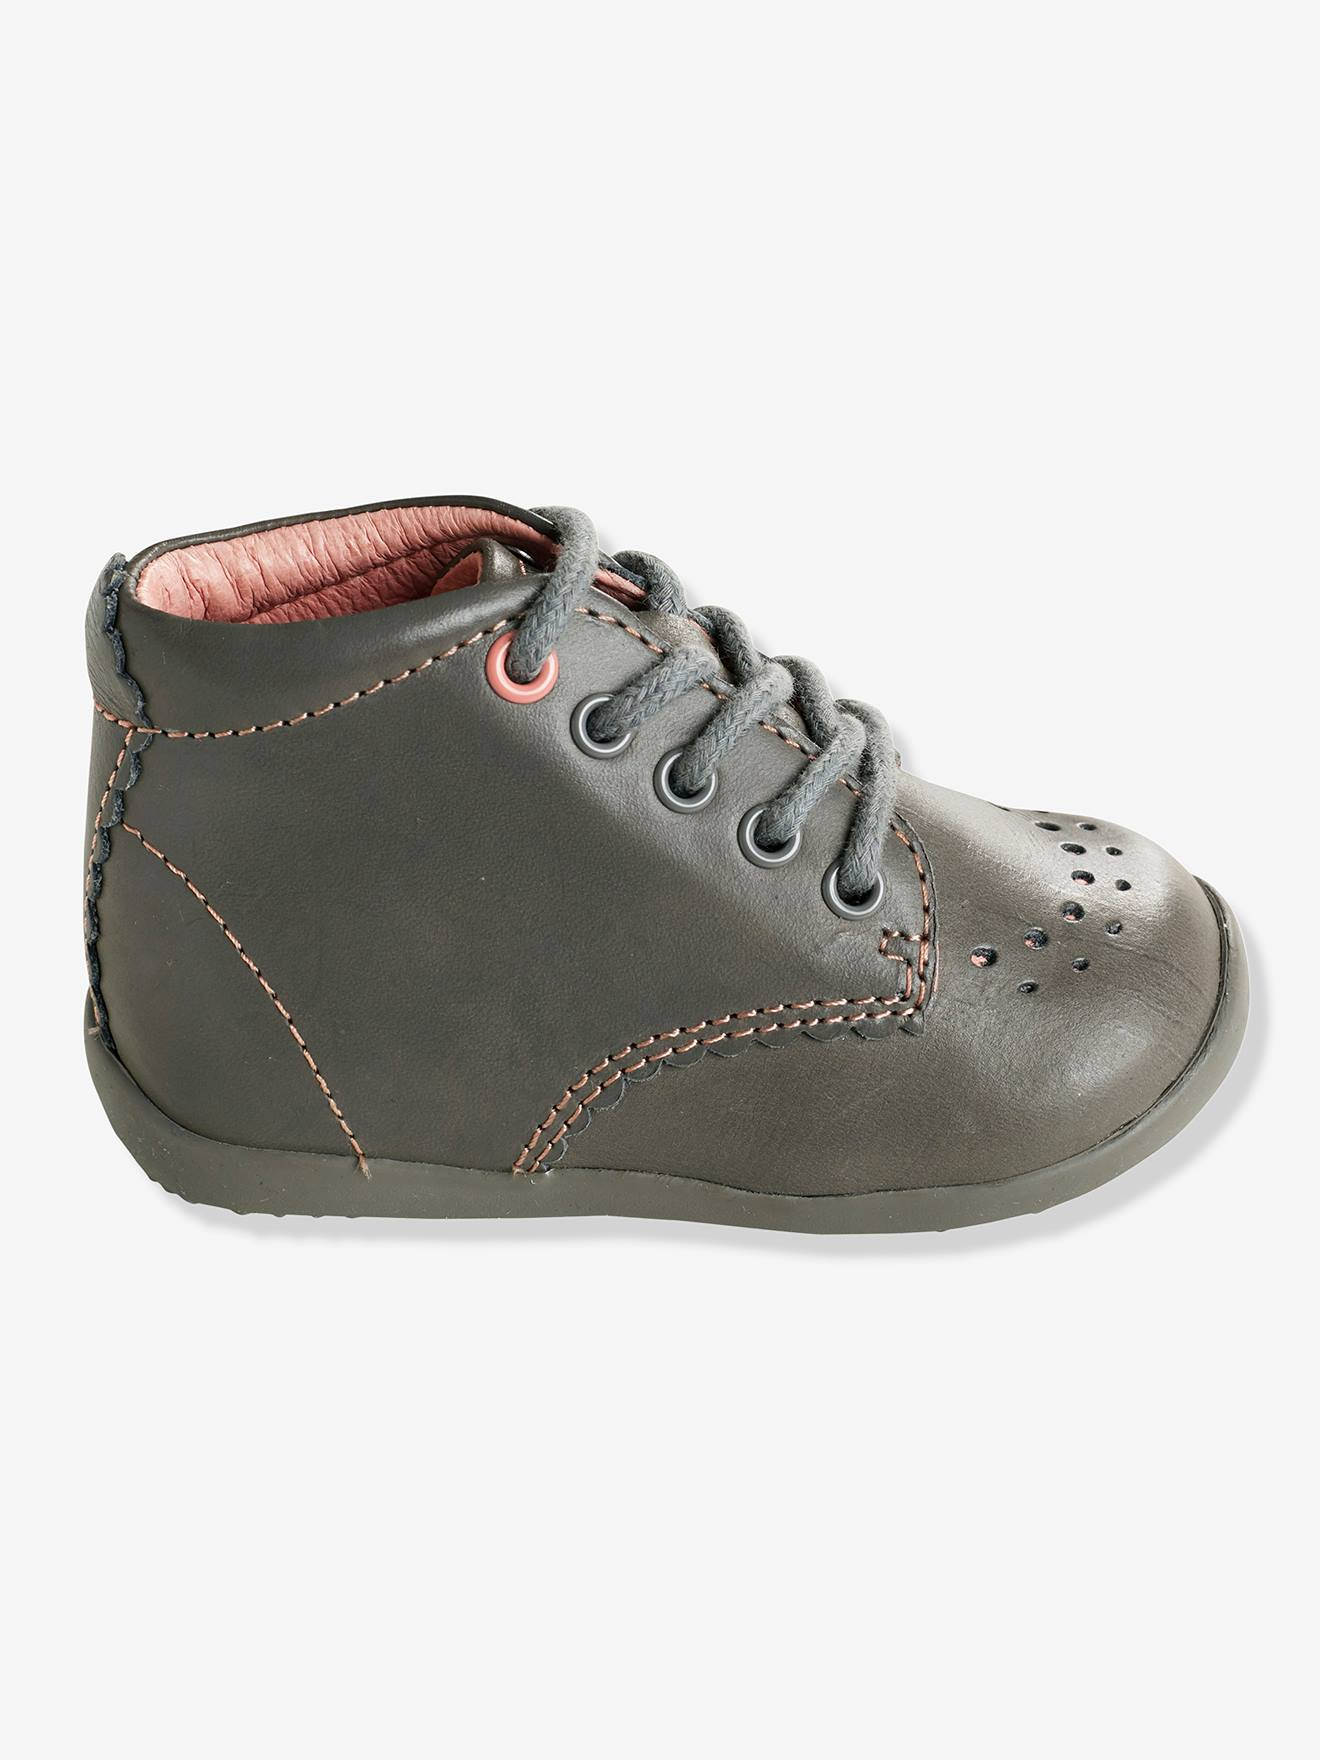 Girls Leather Ankle Boots Designed for First Steps Shoes